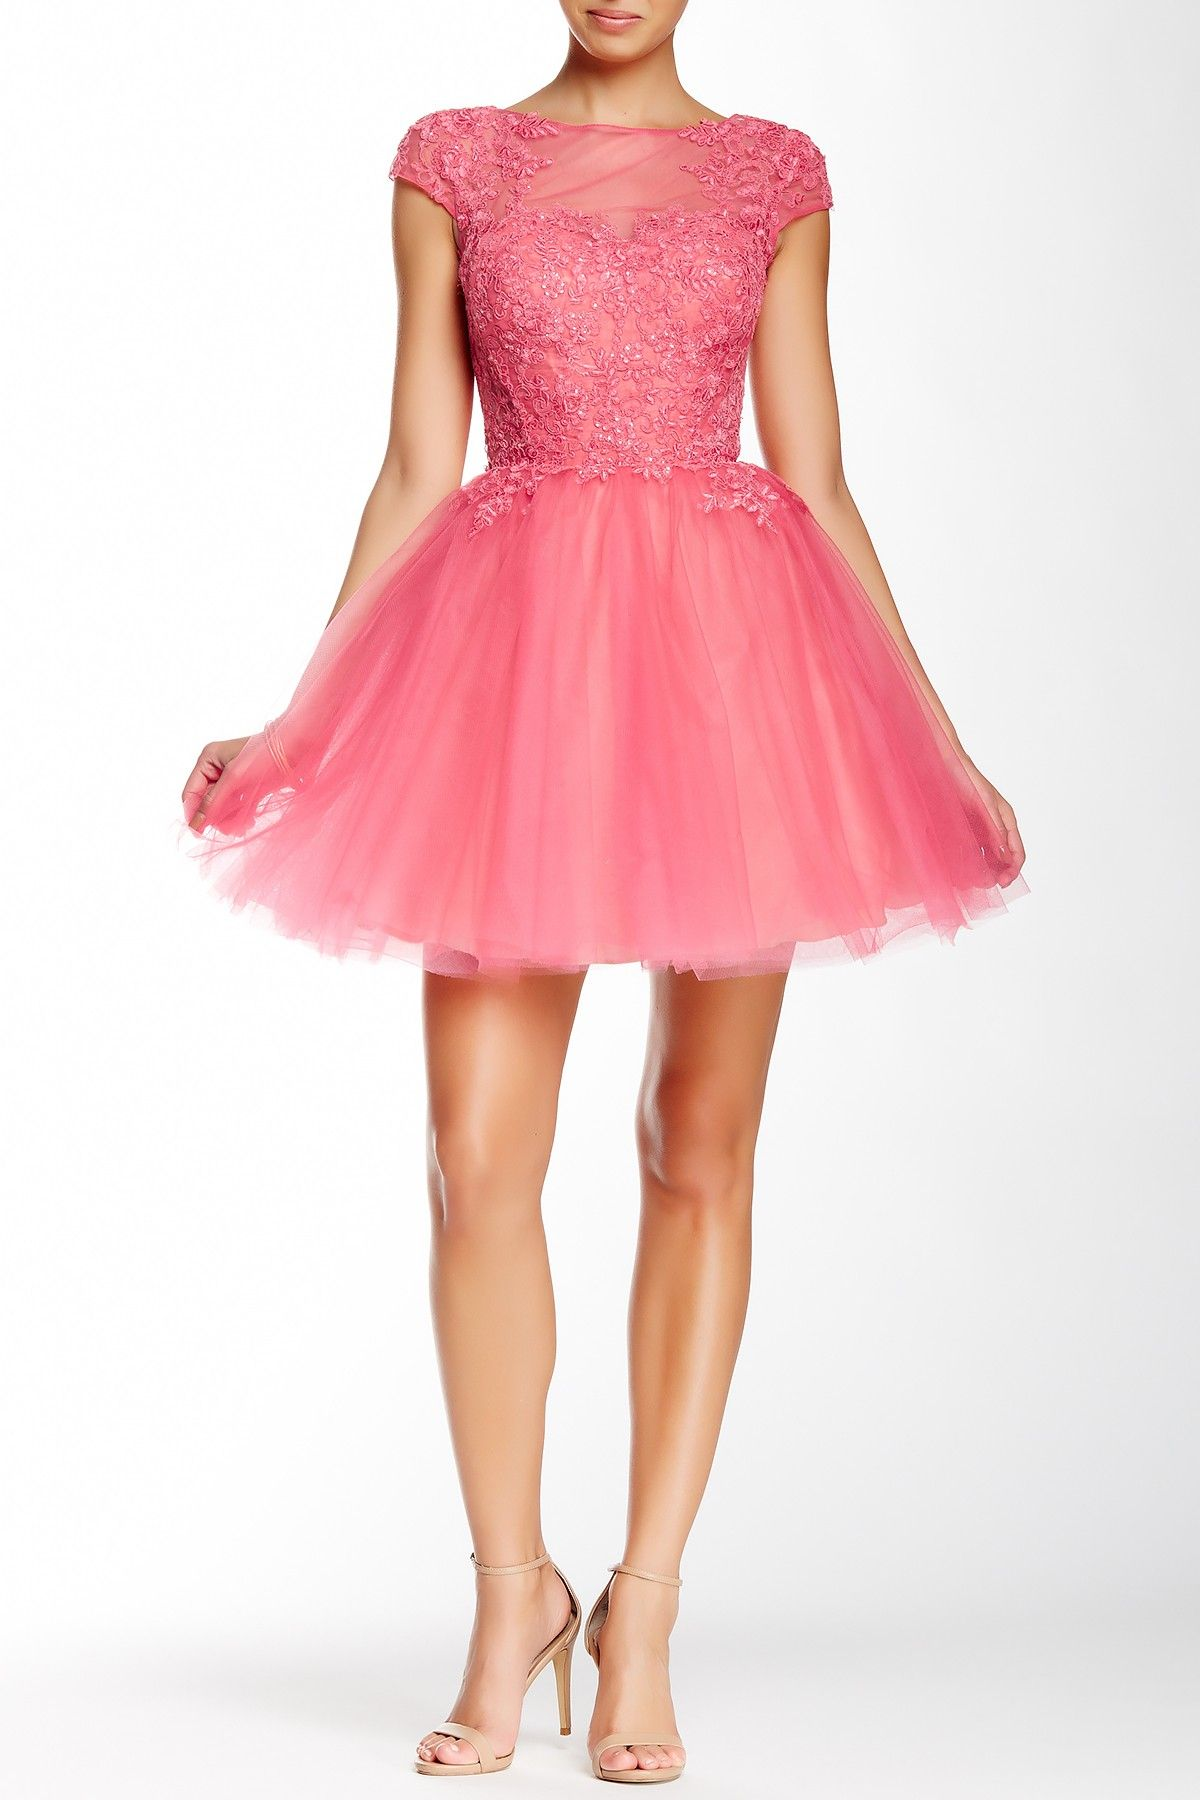 Hello the prettiest pink party dress! | My Style | Pinterest